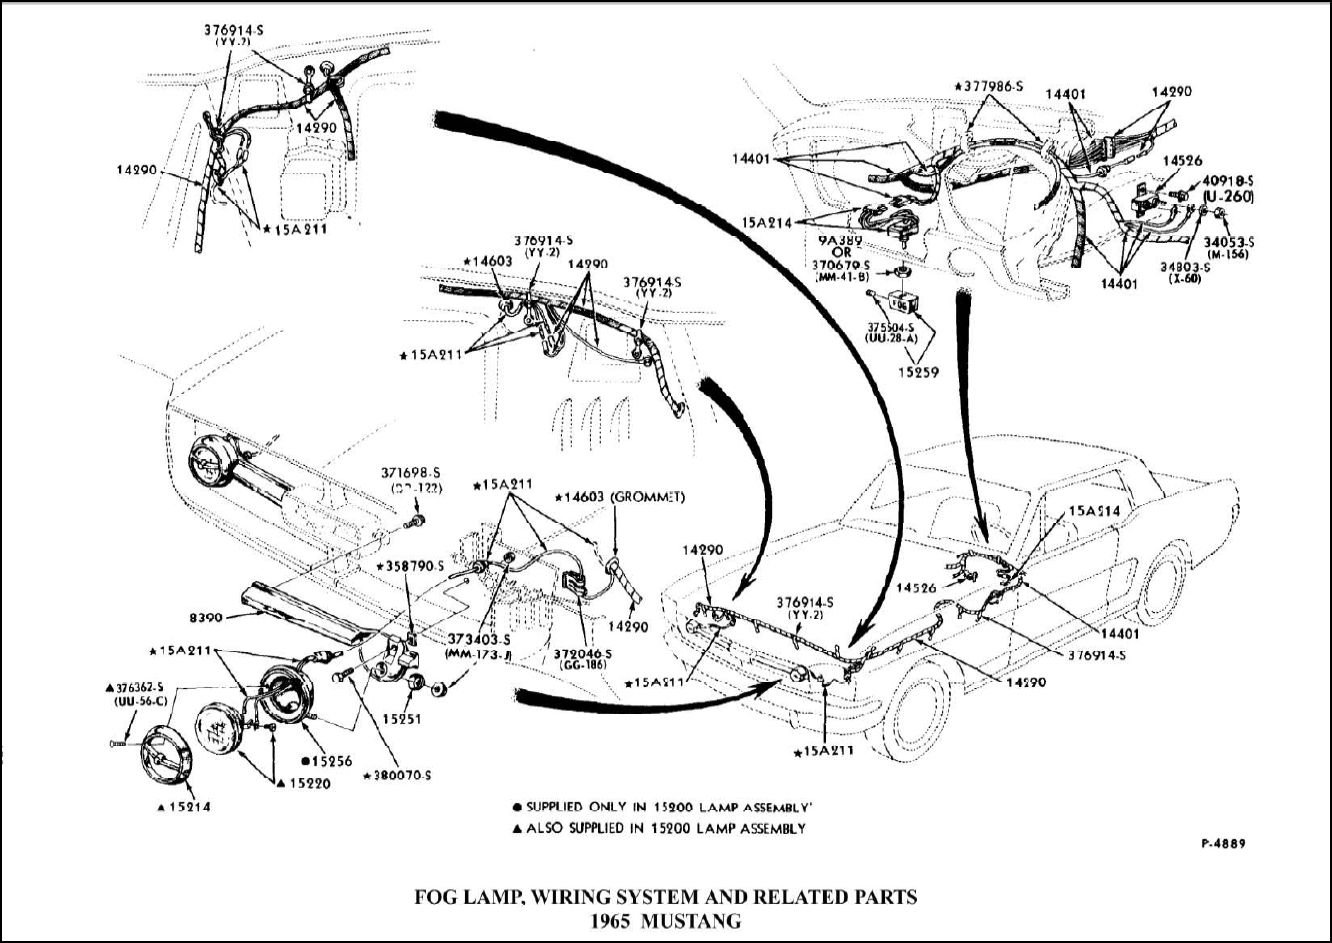 2008 ford mustang fog light wiring diagram  u2022 wiring